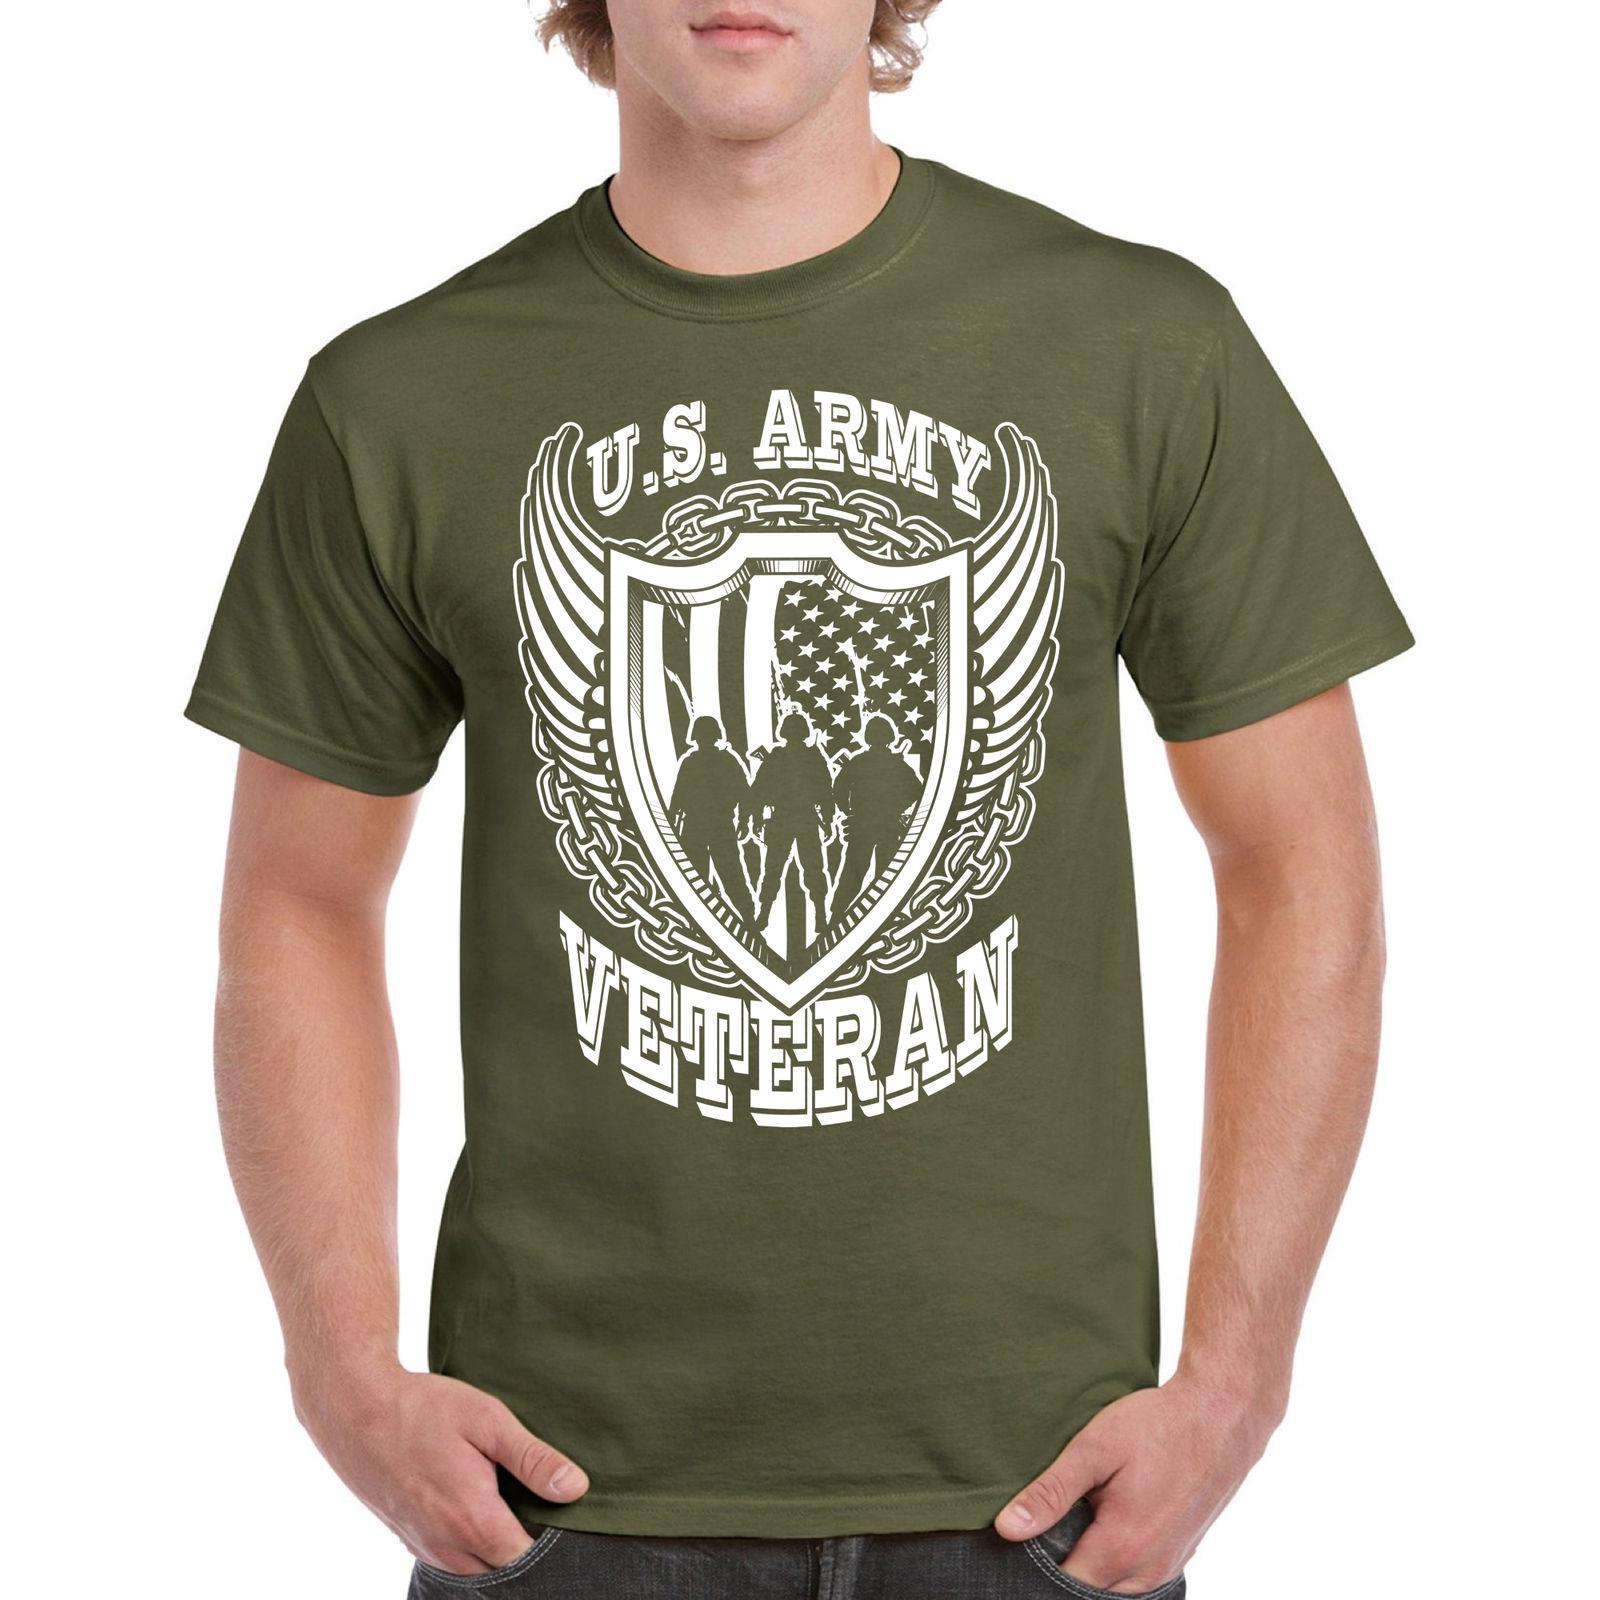 Veteran T Shirt US Army Tee S Navy Military Tee War Hero Iraq Vet Tshirt  Funny Unisex Casual Tshirt Clothes T Shirt Crazy T Shirts Designs From  Blue water 479fe37463b